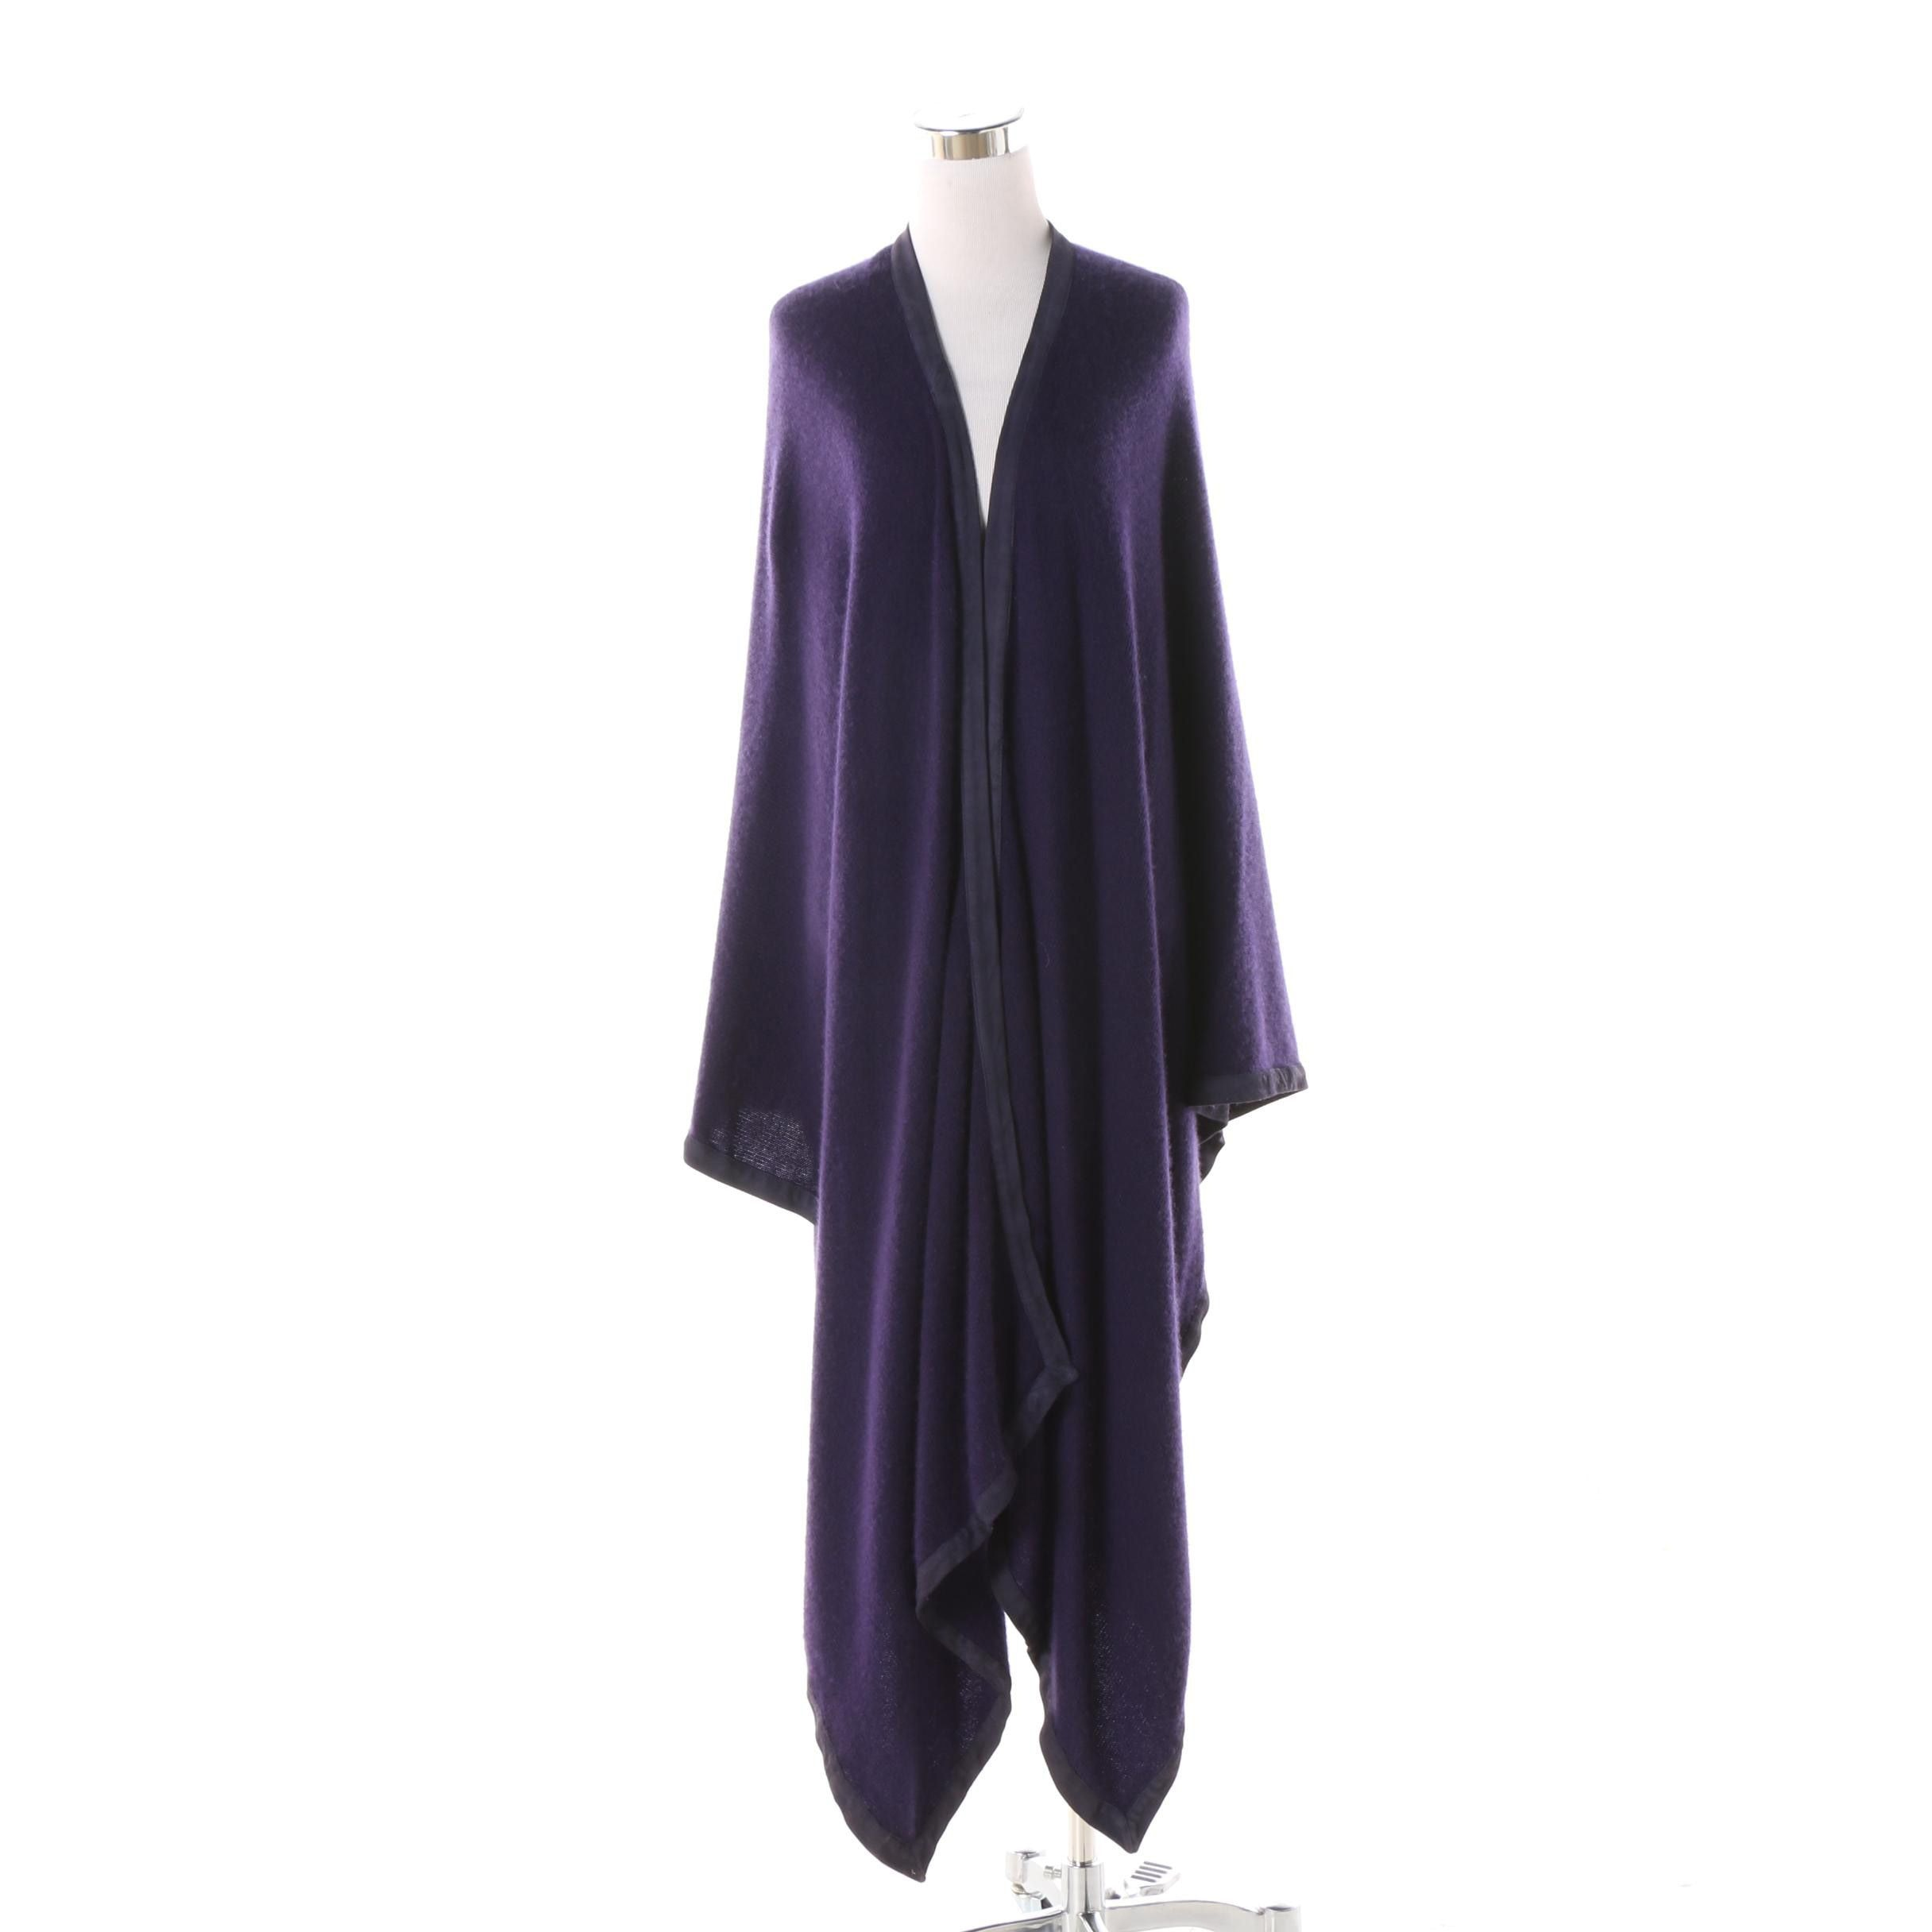 Women's Ralph Lauren Collection Purple Cashmere and Suede Shrug